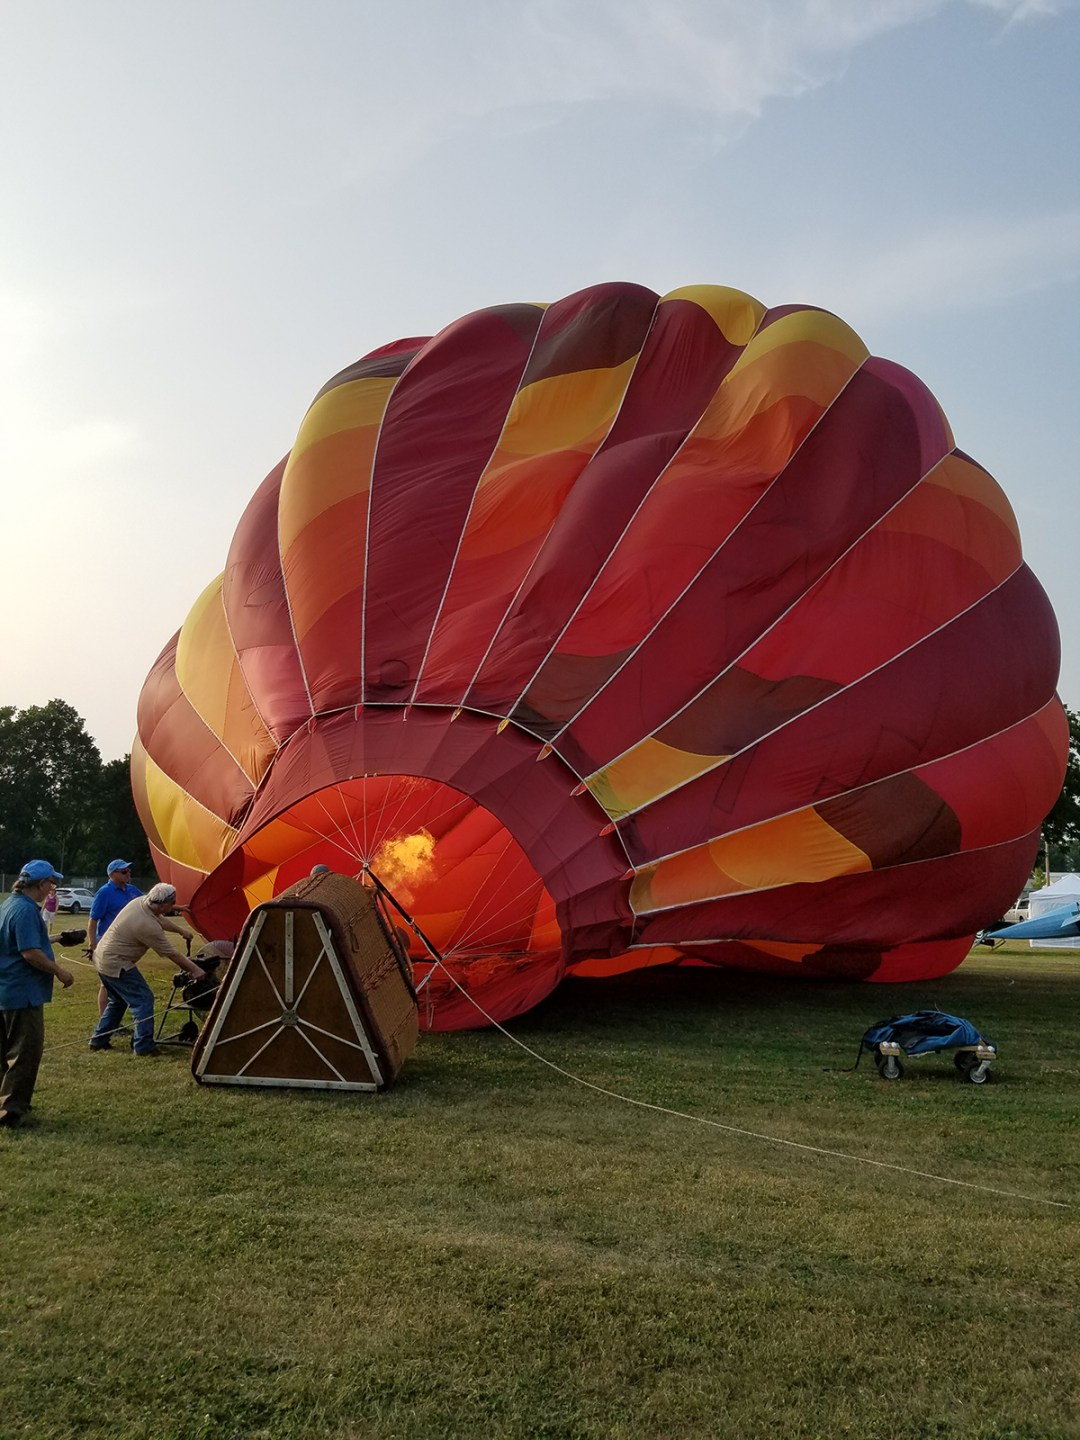 Image of a plume of fire inside a half-inflated hot air balloon on the grounds of the Hudson Valley Hot-Air Balloon Festival days before the event. Caption: A whole lotta heat goes into getting a balloon vertical; photo by Robin Catalano.